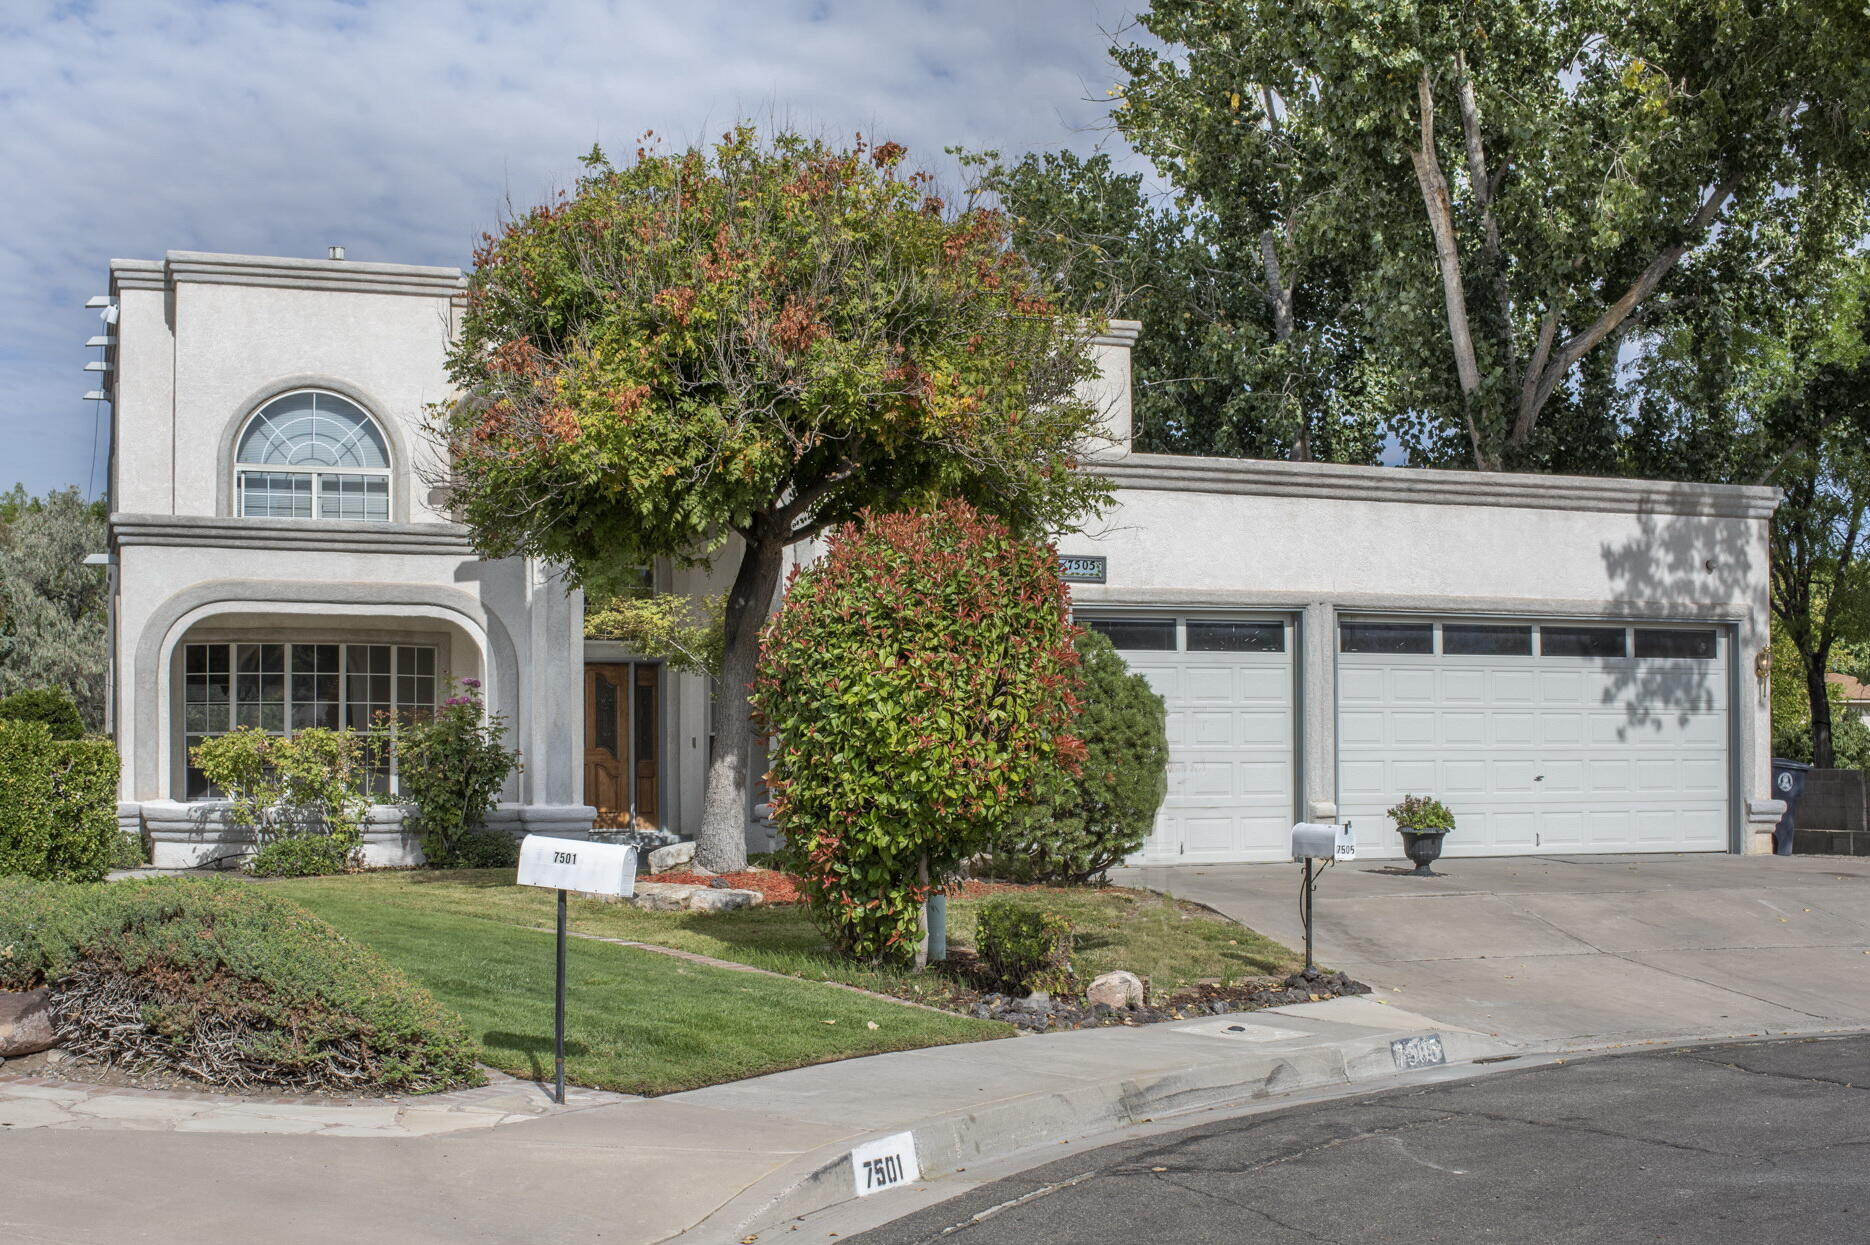 OPEN 10/17 SUNDAY 2:30-4:30 Graceful 2 story home w/multiple patios & gardens. This 4 bed / 3 bath home sits in a highly desired neighborhood between ABQ Academy & La Cueva High School. Convenient to shopping, restaurants, hiking in the Sandias, & other great Albuquerque attractions. Master bedroom (up) is expansive, but there is a guest bed/office with a bathrm on the main level as well. This home sports two living areas and a wide open, renovated kitchen that opens to the breakfast nook & family room.  Main floor is all hard surface flooring (no carpet). All appliances included. This yard has beautiful grass, cascading planters, 3 patios, gas hookup for grill, and a separate patio for a hot tub or private sitting area.  ASK ABOUT an available $3,700 seller credit to buyer at close!